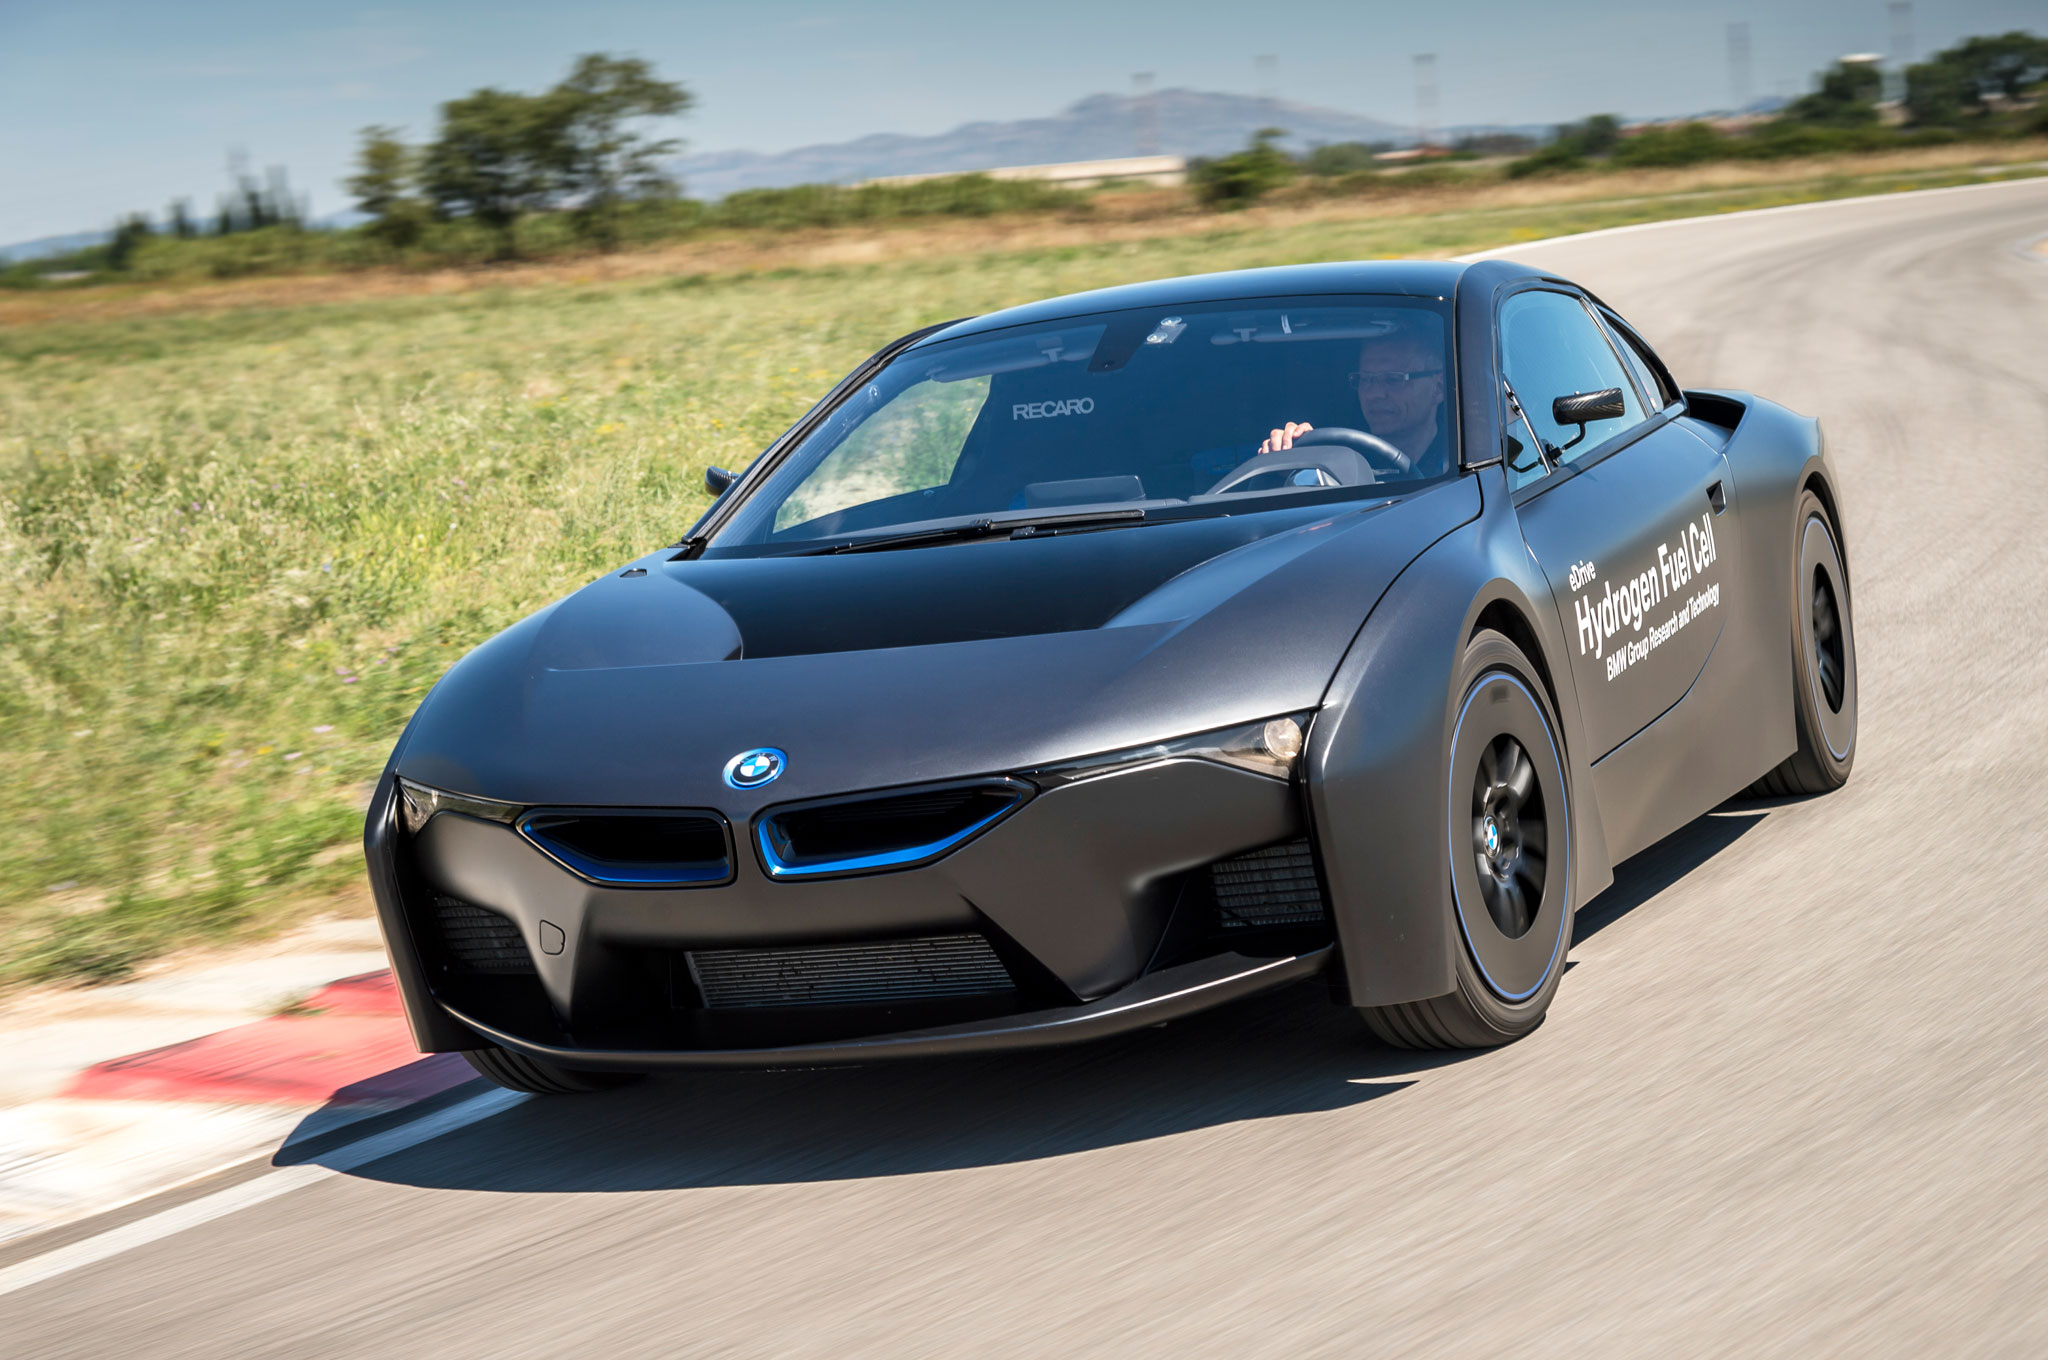 BMW Shows Off Fuel Cell Tech With Sinister-Looking i8-Based Test Car